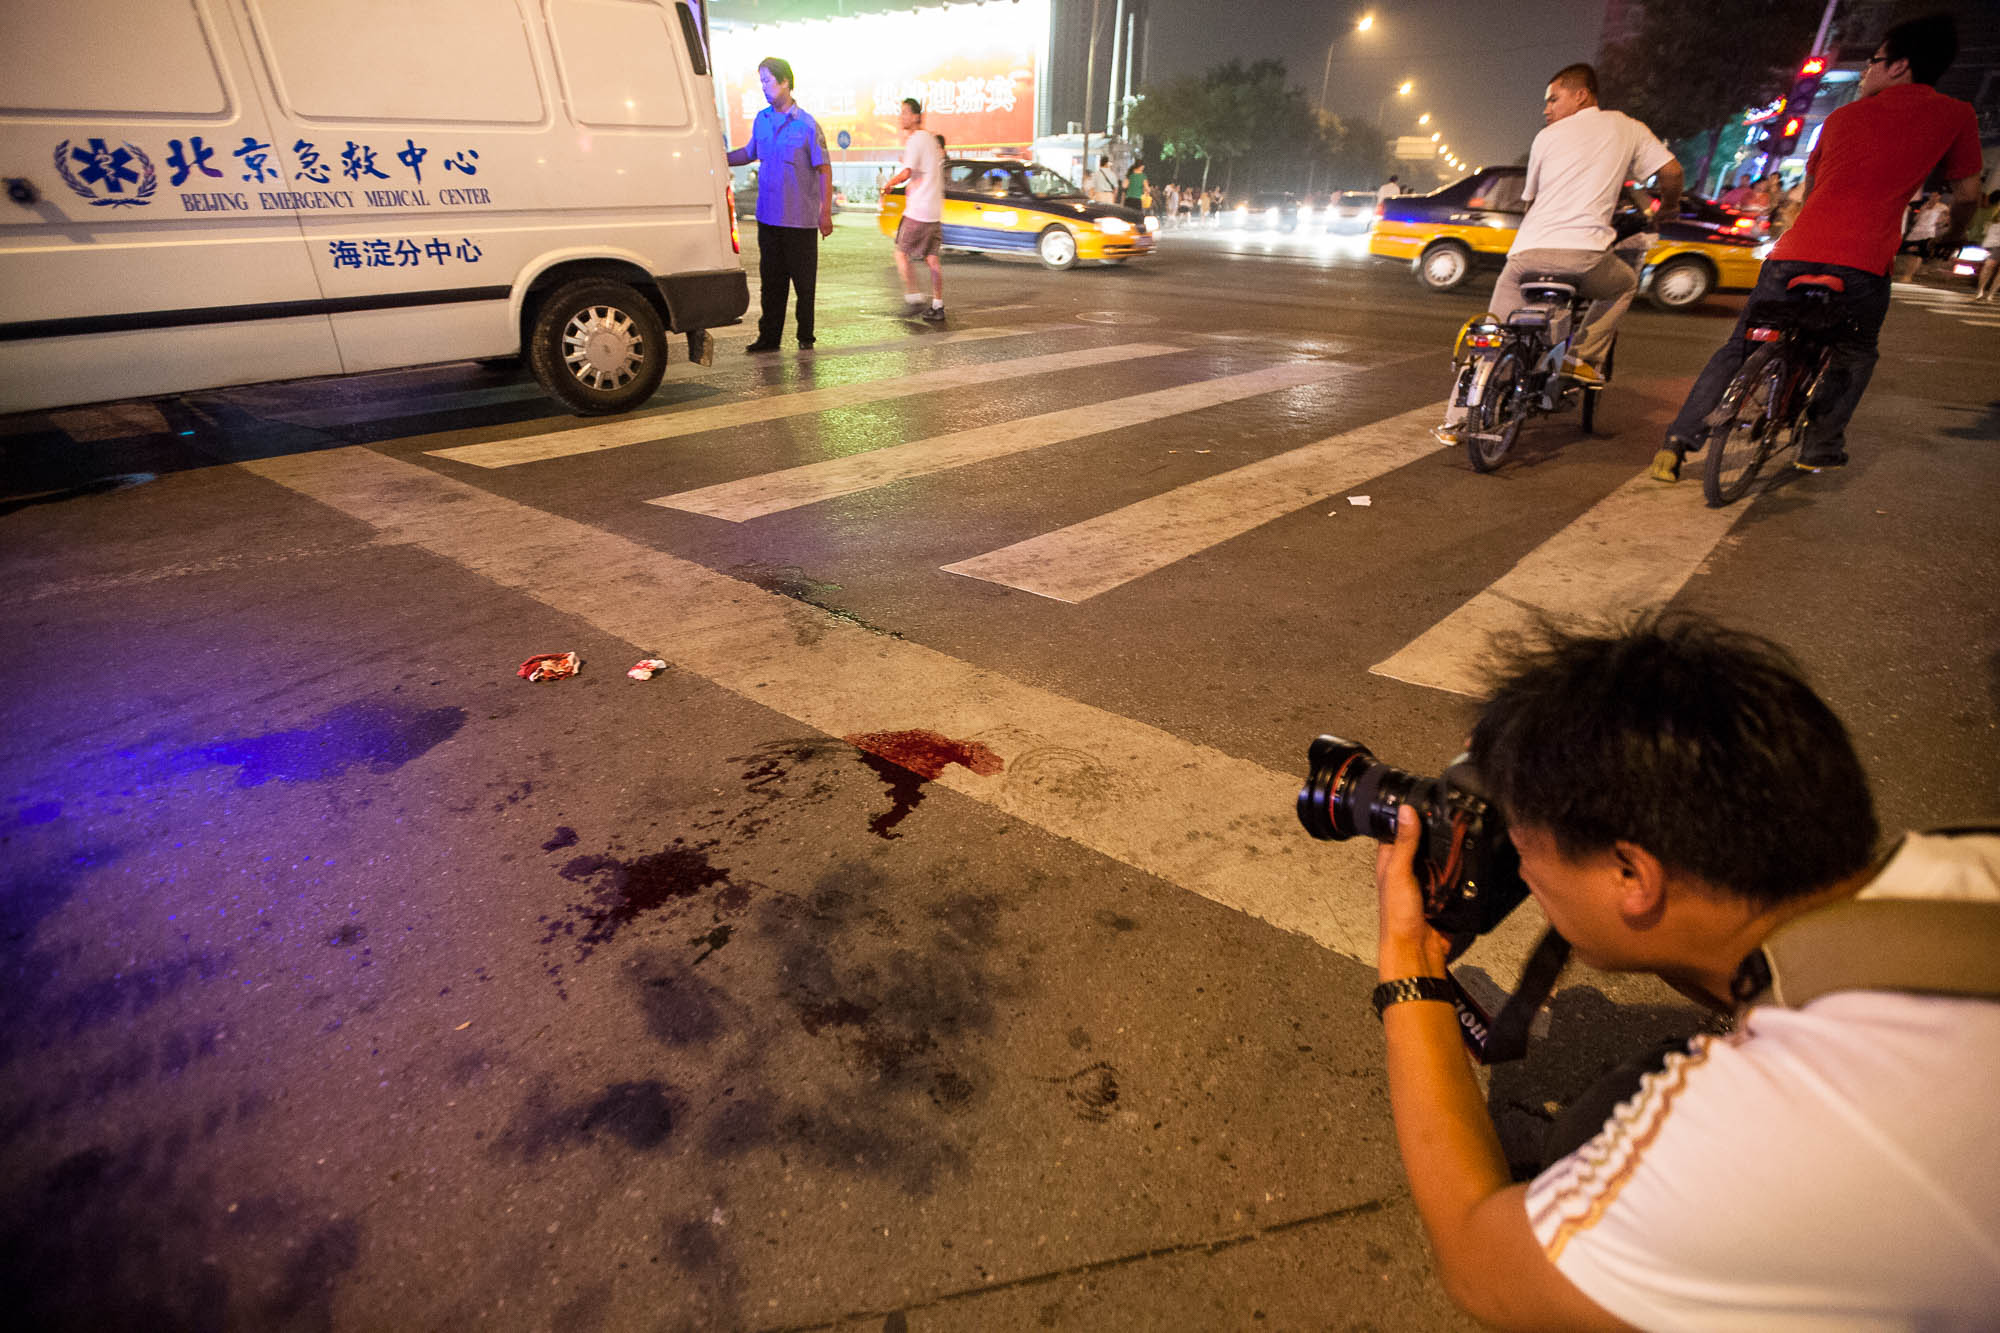 photographing the blood